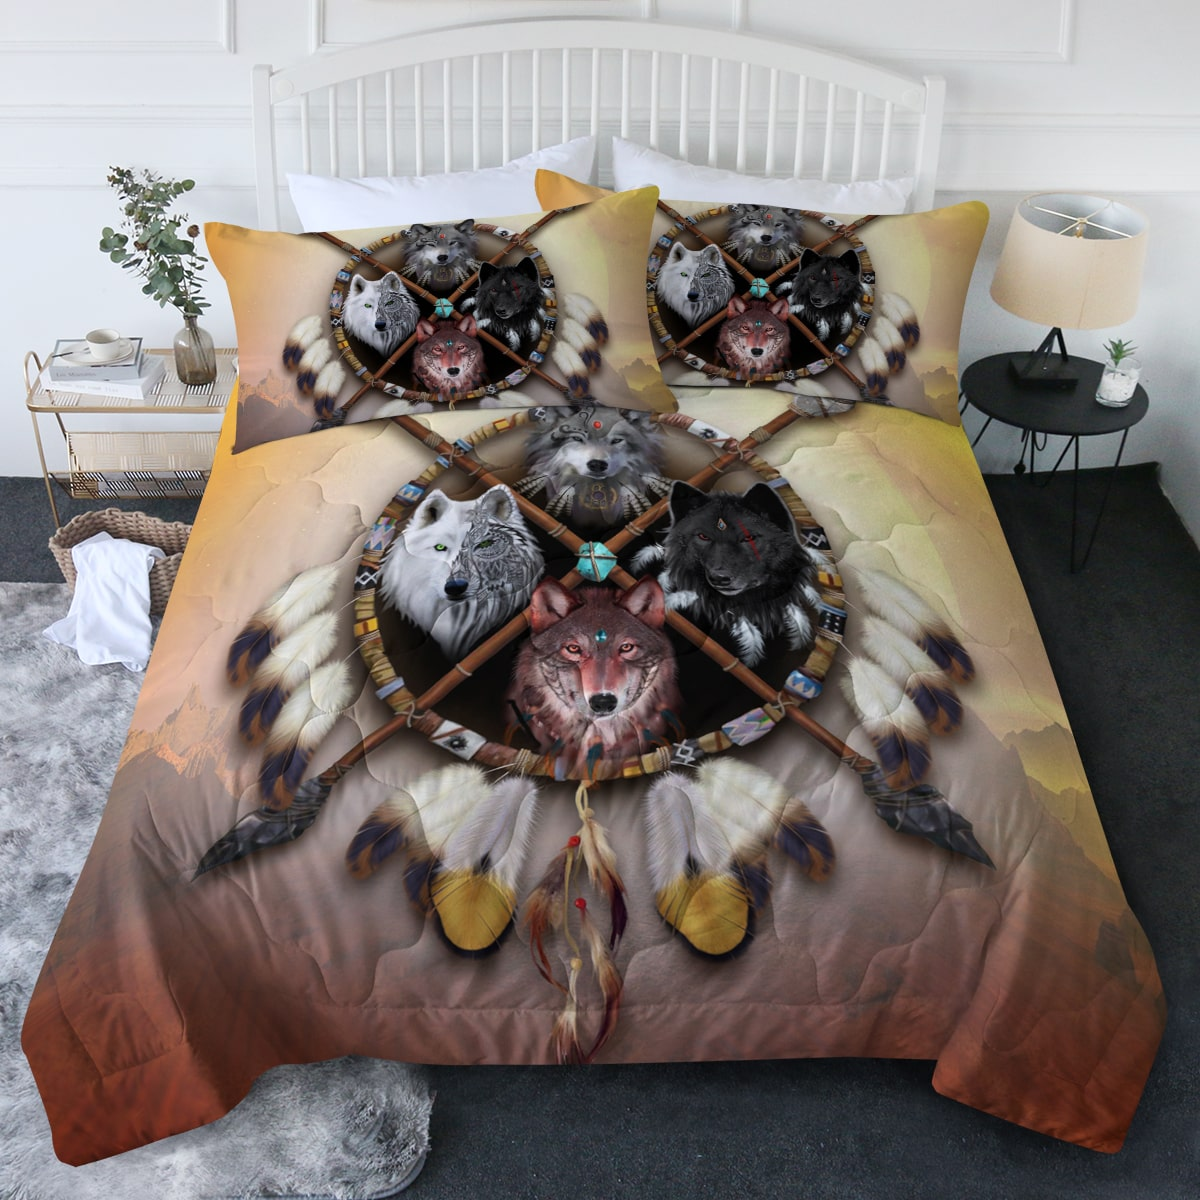 4 Wolves Warrior Light Comforter Bedding Set